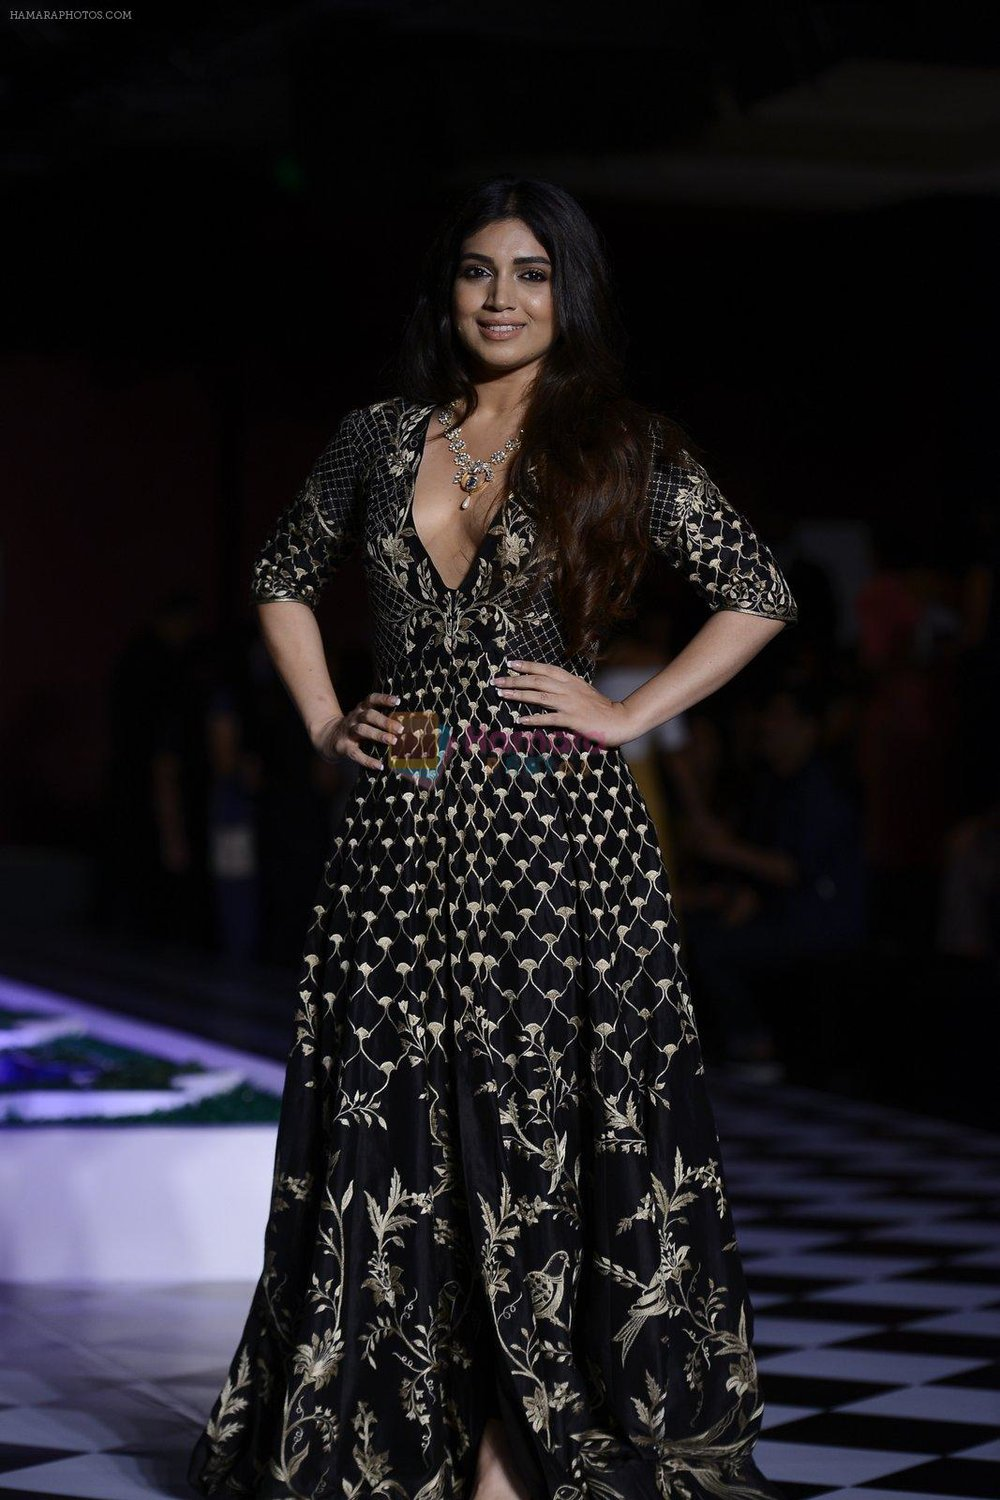 Bhumi-Pednekar-walk-the-ramp-for-Anita-Dongre-show-at-the-FDCI-India-Couture-Week-2016-on-21st-July-2016-2.jpg